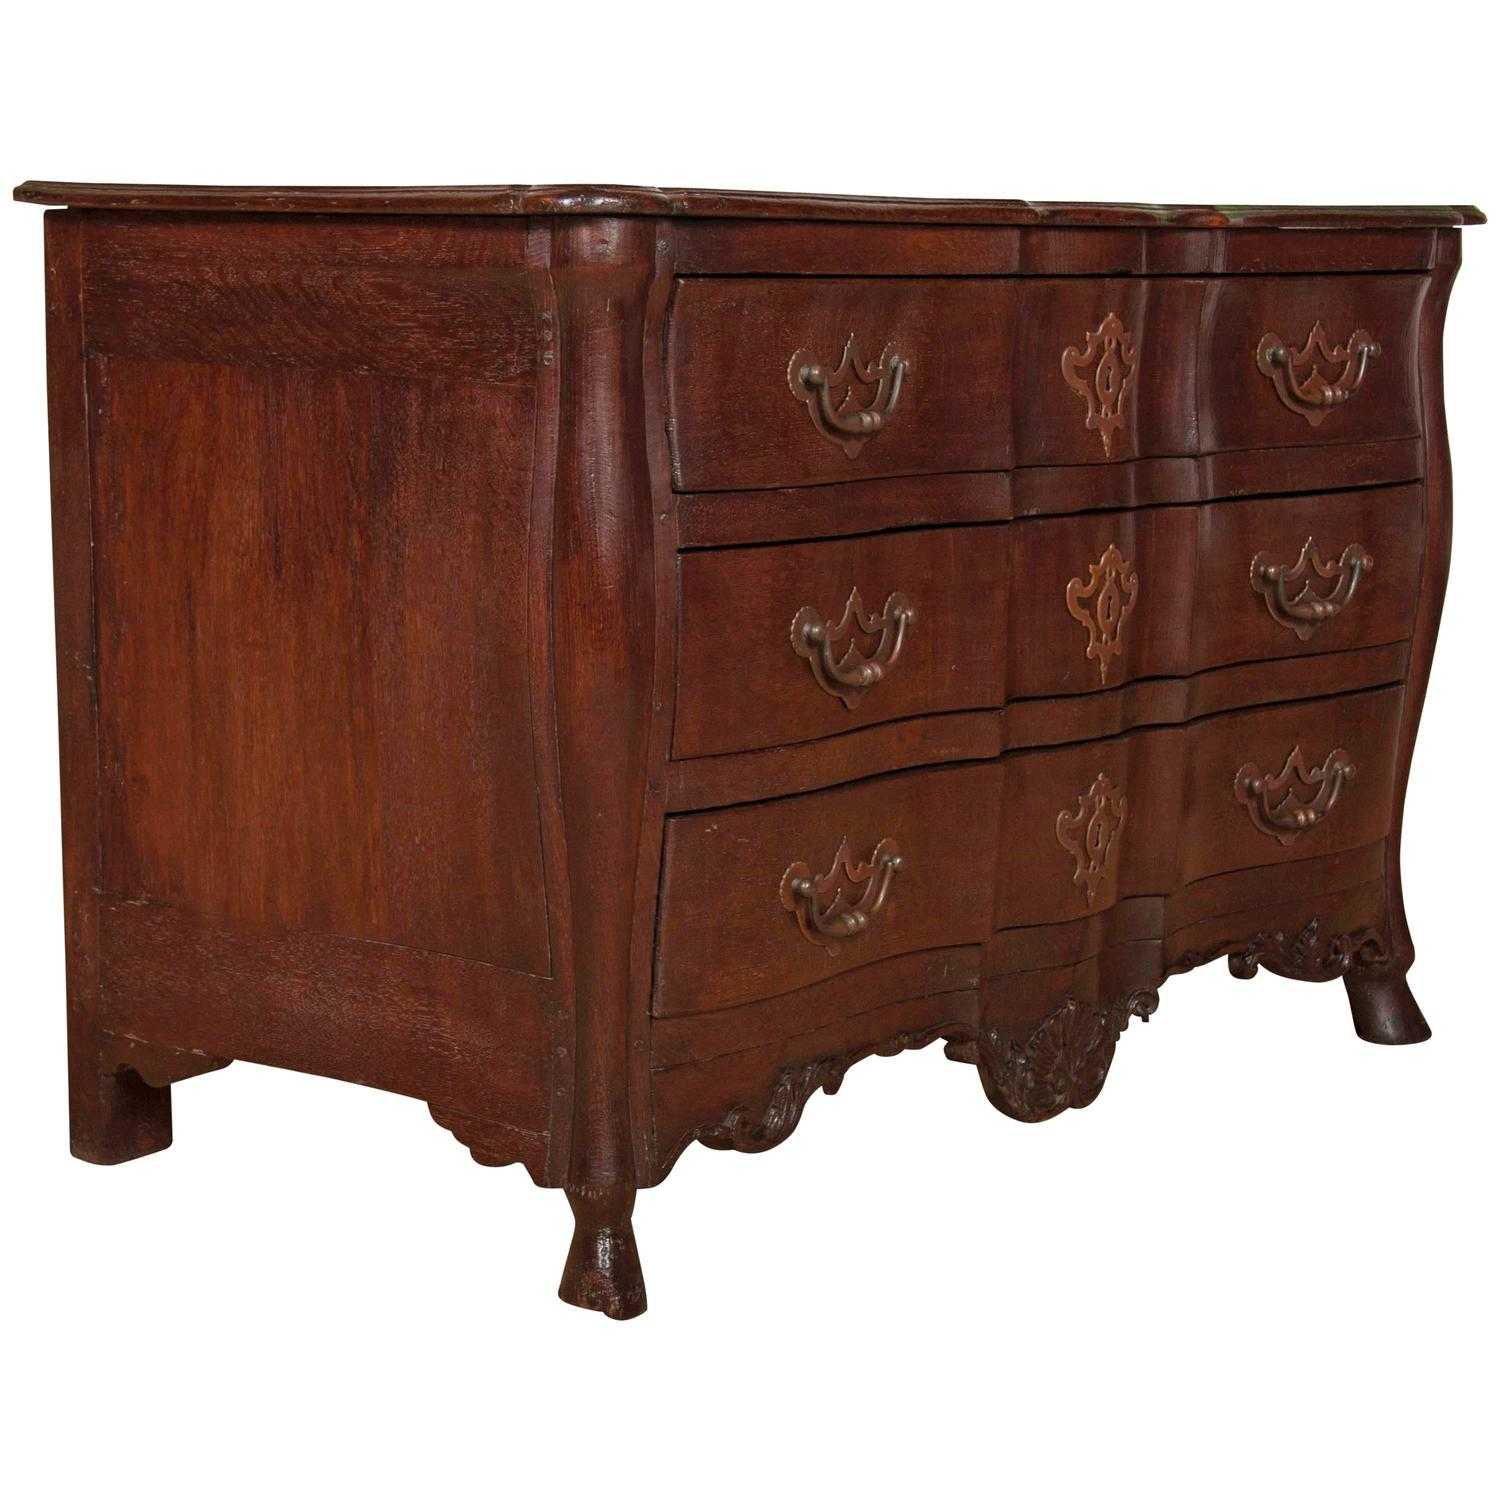 robust louis xv provincial bureau in oak for sale at 1stdibs. Black Bedroom Furniture Sets. Home Design Ideas